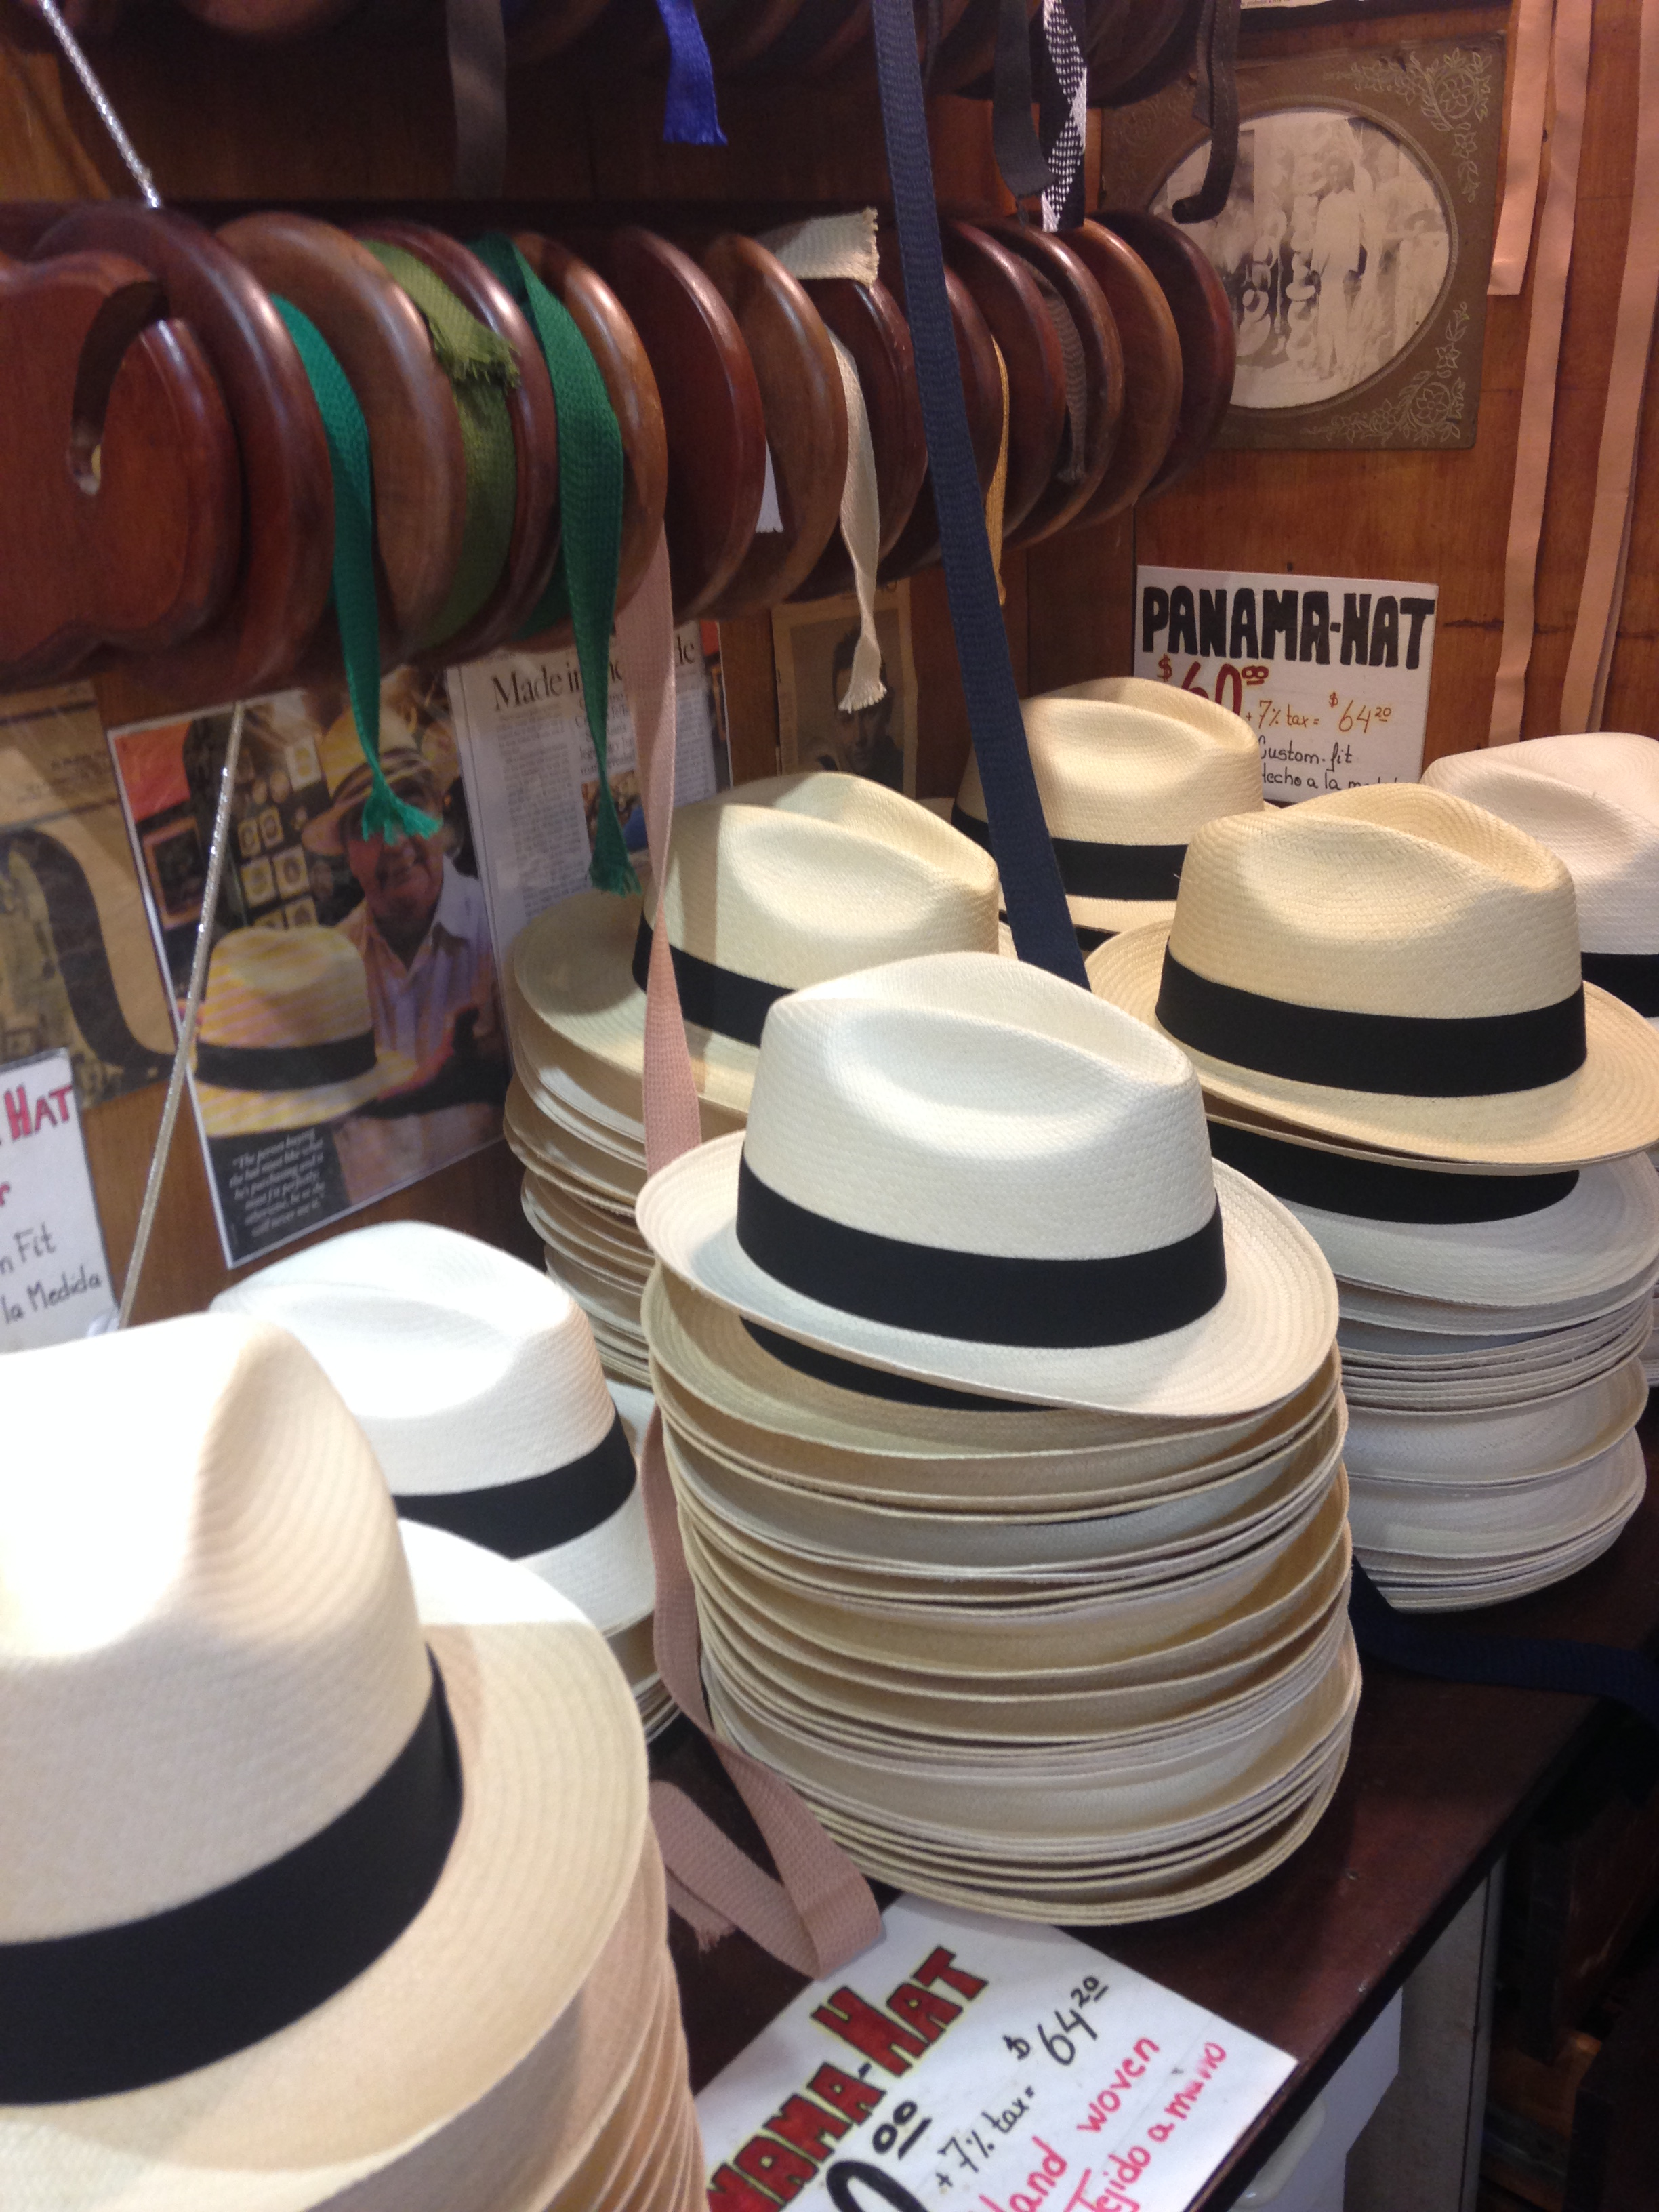 Shopping for Panama hats at Ole Curiosidades. So many ribbon options!